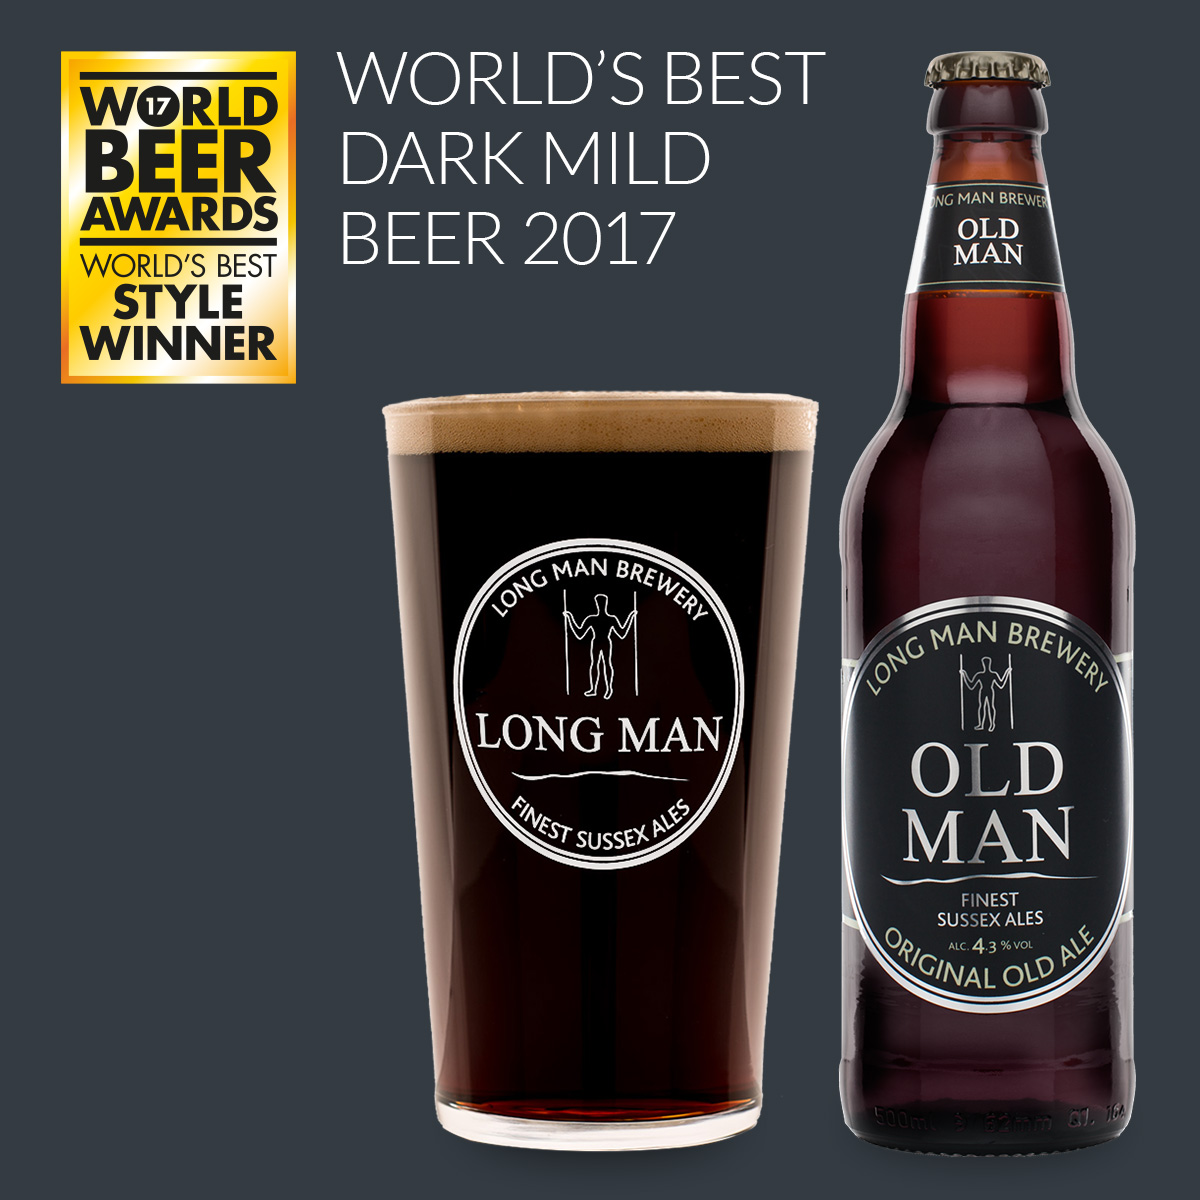 Old man Wordl's Best Dark mild Beer 2017